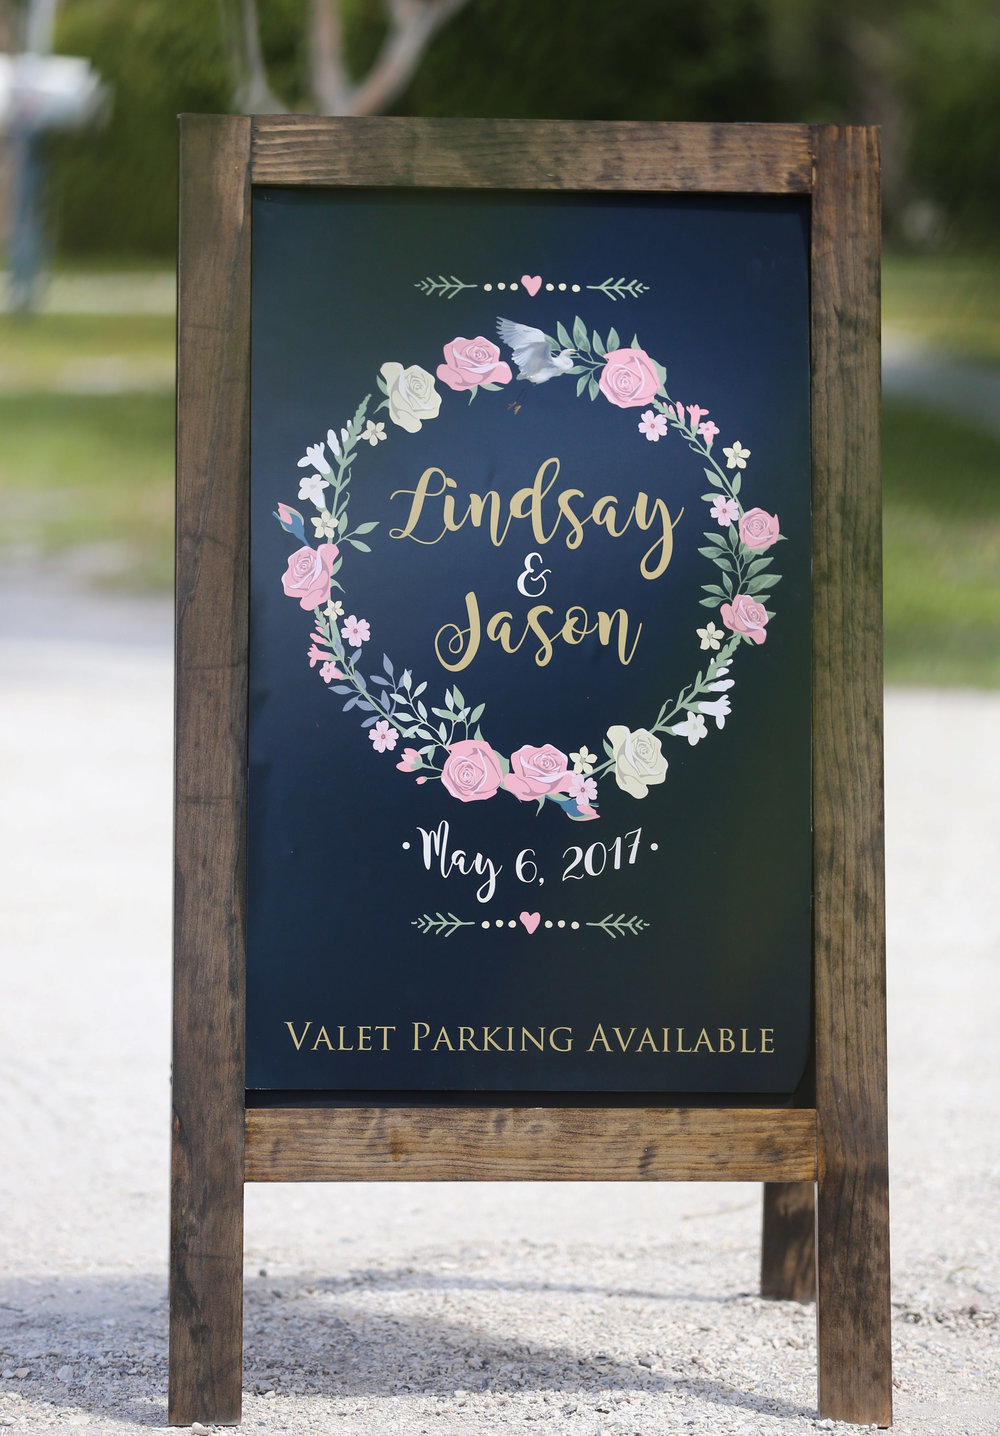 A custom sign with a floral wreath and dark wood frame was created as a welcome sign for guests.